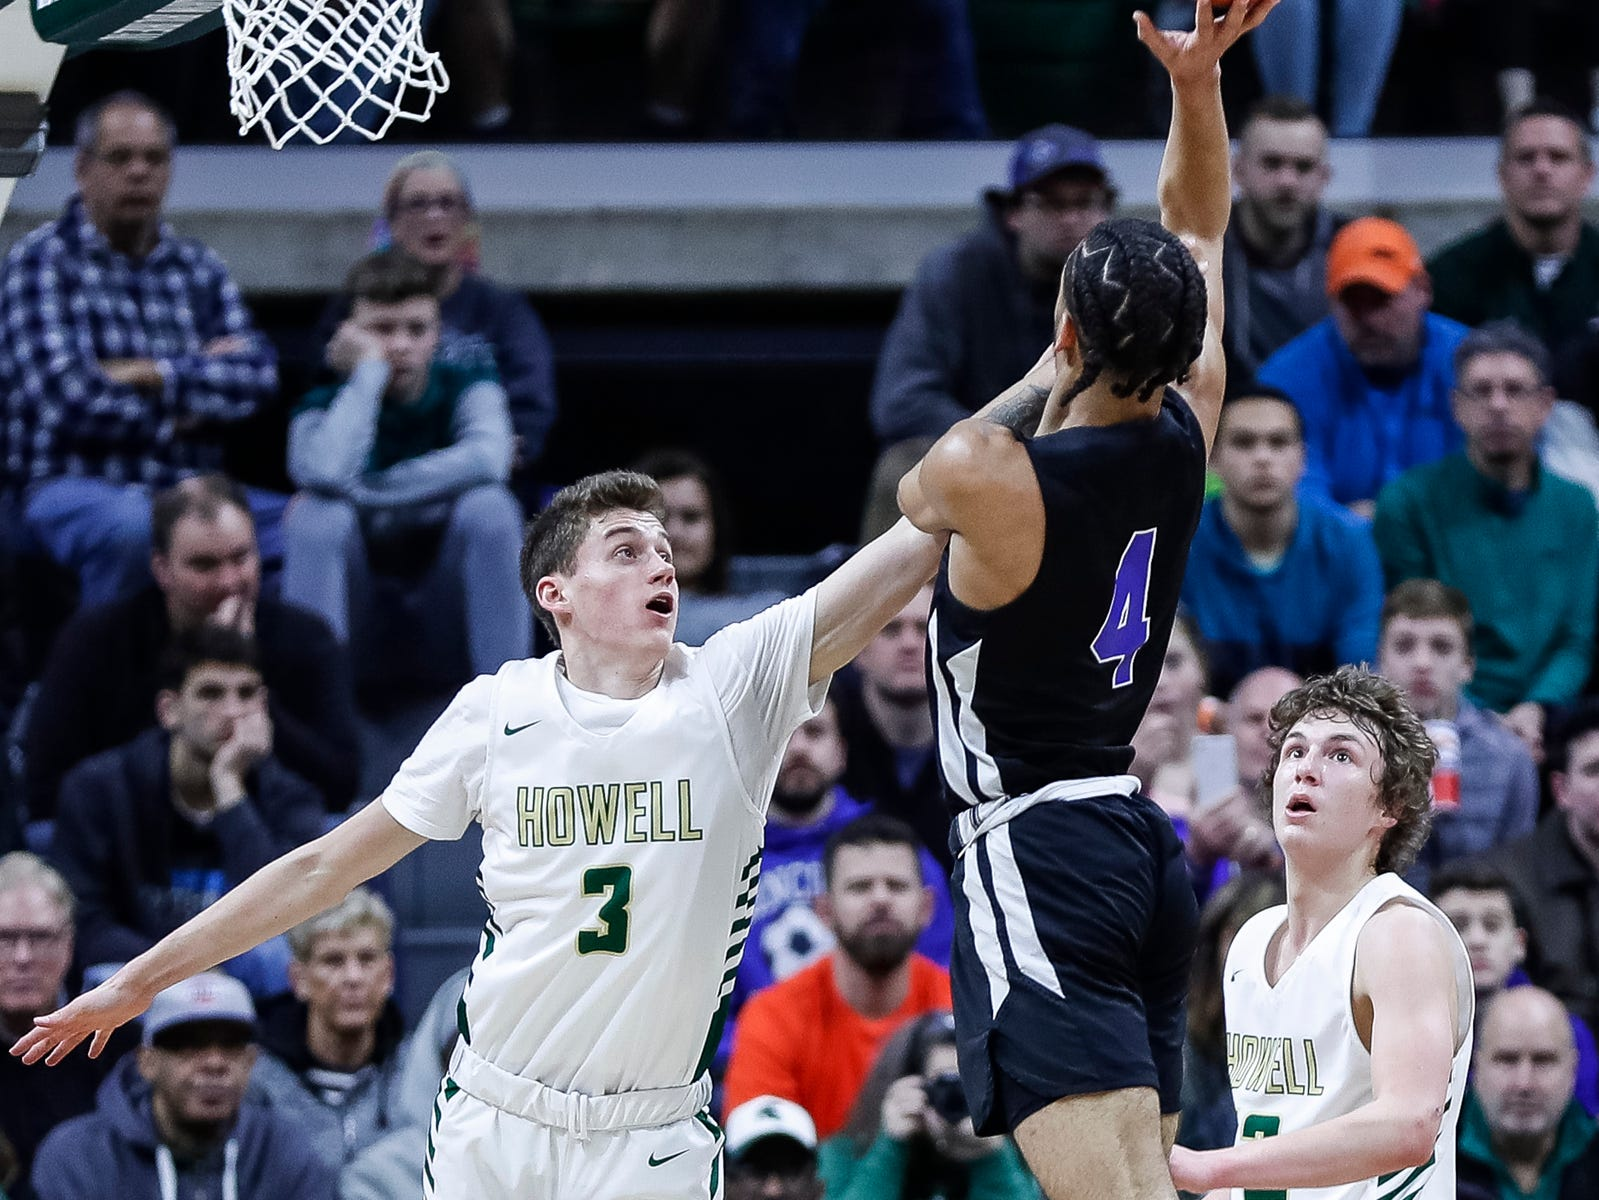 Ypsilanti Lincoln's Amari Frye (4) shoots against Howell's Kip French (3) during the first half of MHSAA Division 1 semifinal at the Breslin Center in East Lansing, Friday, March 15, 2019.